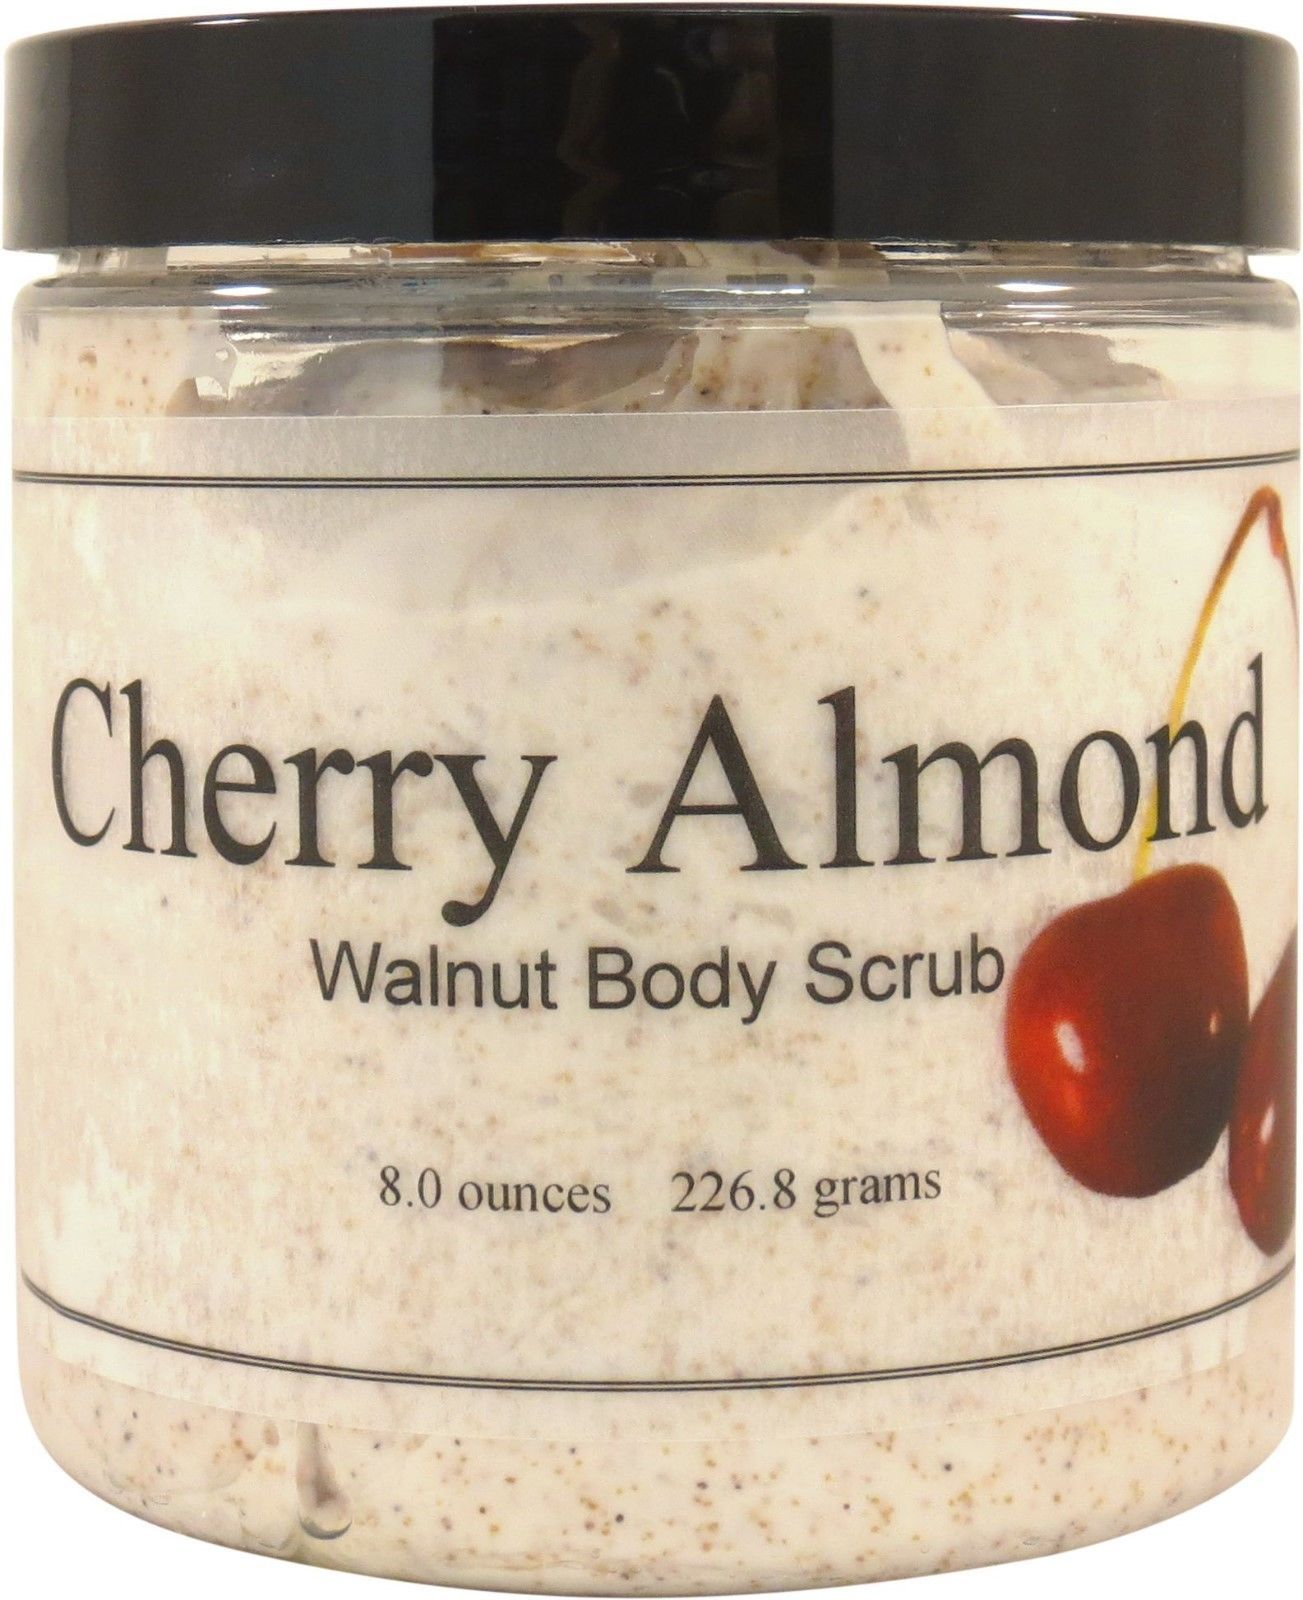 Cherry Almond Walnut Body Scrub